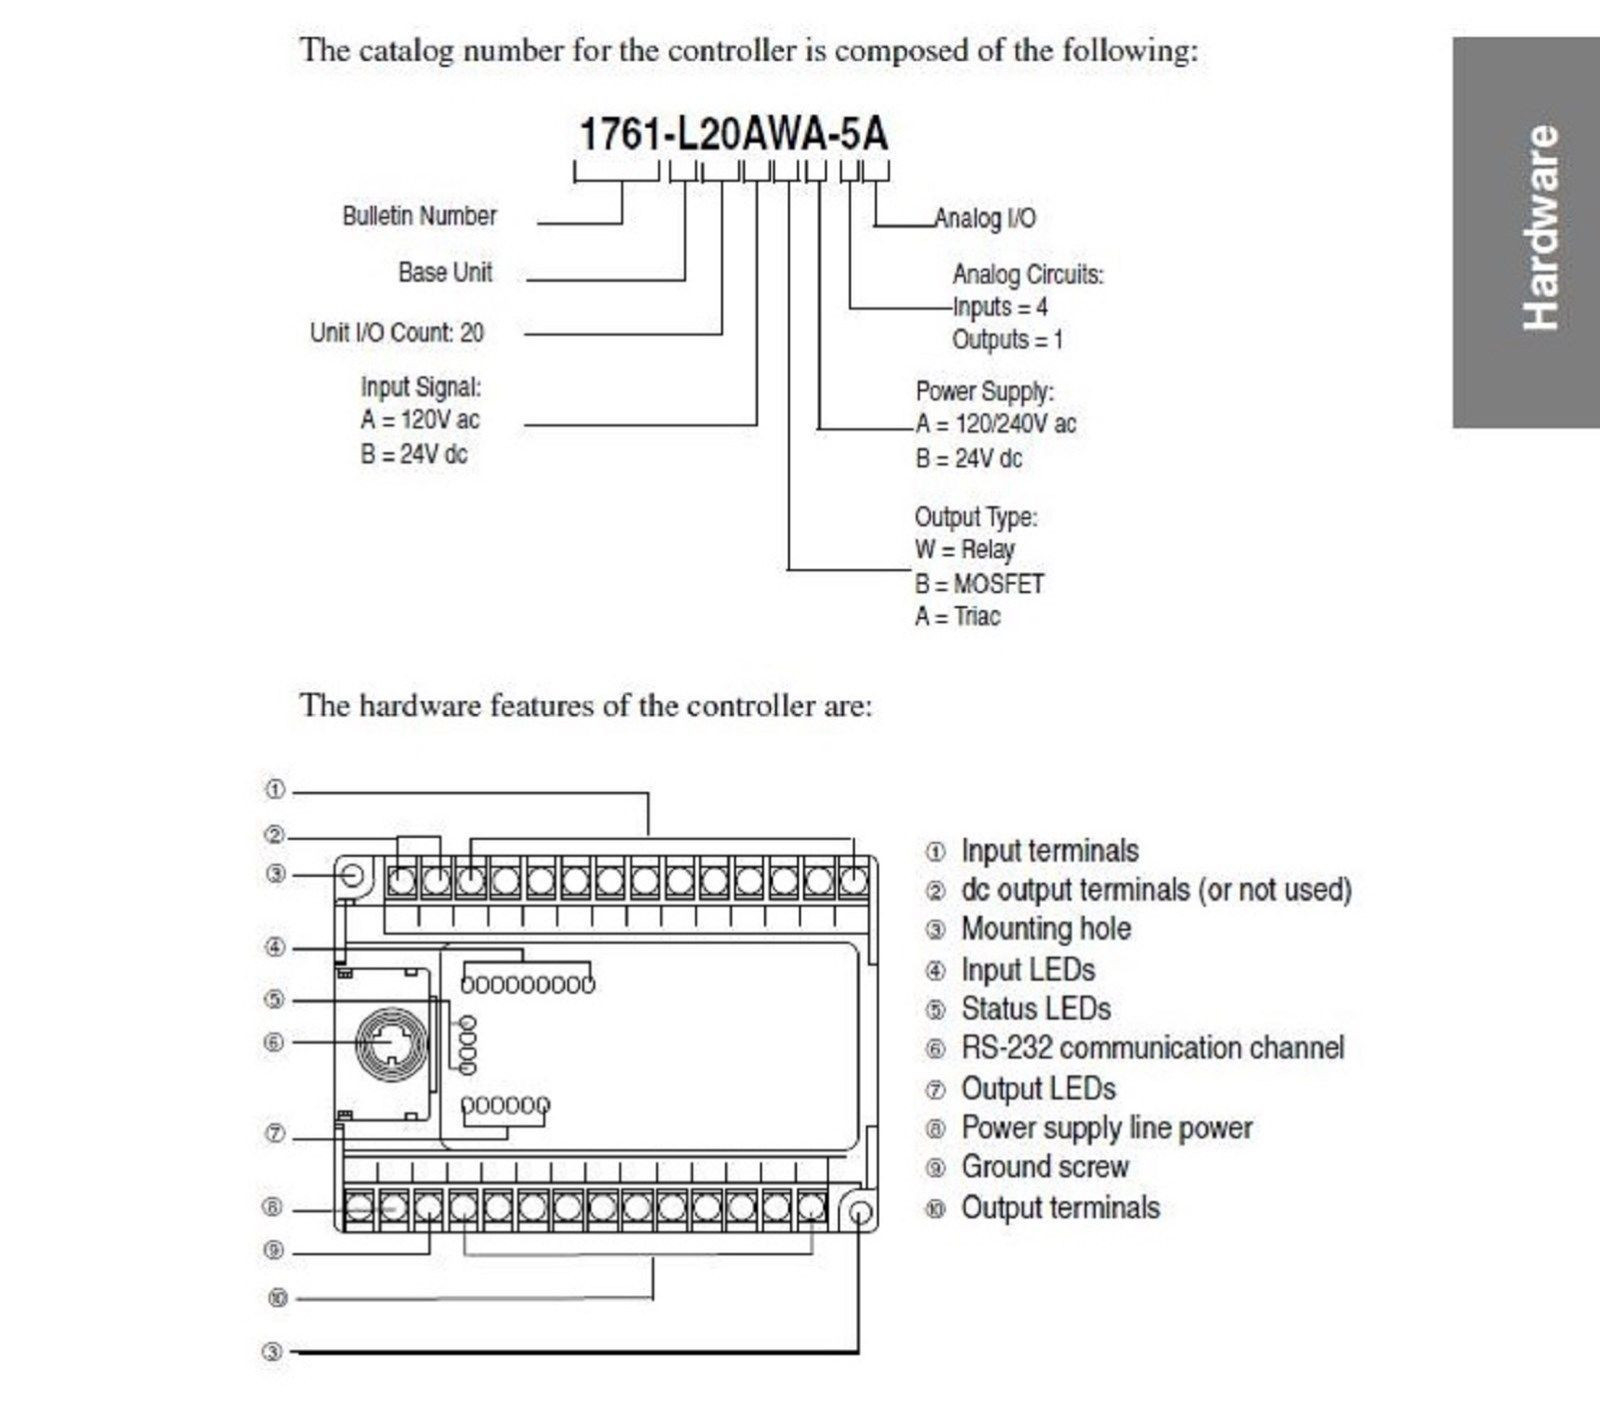 1761 cbl pm02 wiring diagram Download-2015 new sealed allen bradley 1761 l16bwa e fw 10 micrologix 1000 rh natebird me micrologix 1000 analog wiring diagram micrologix 1000 analog wiring diagram 18-c